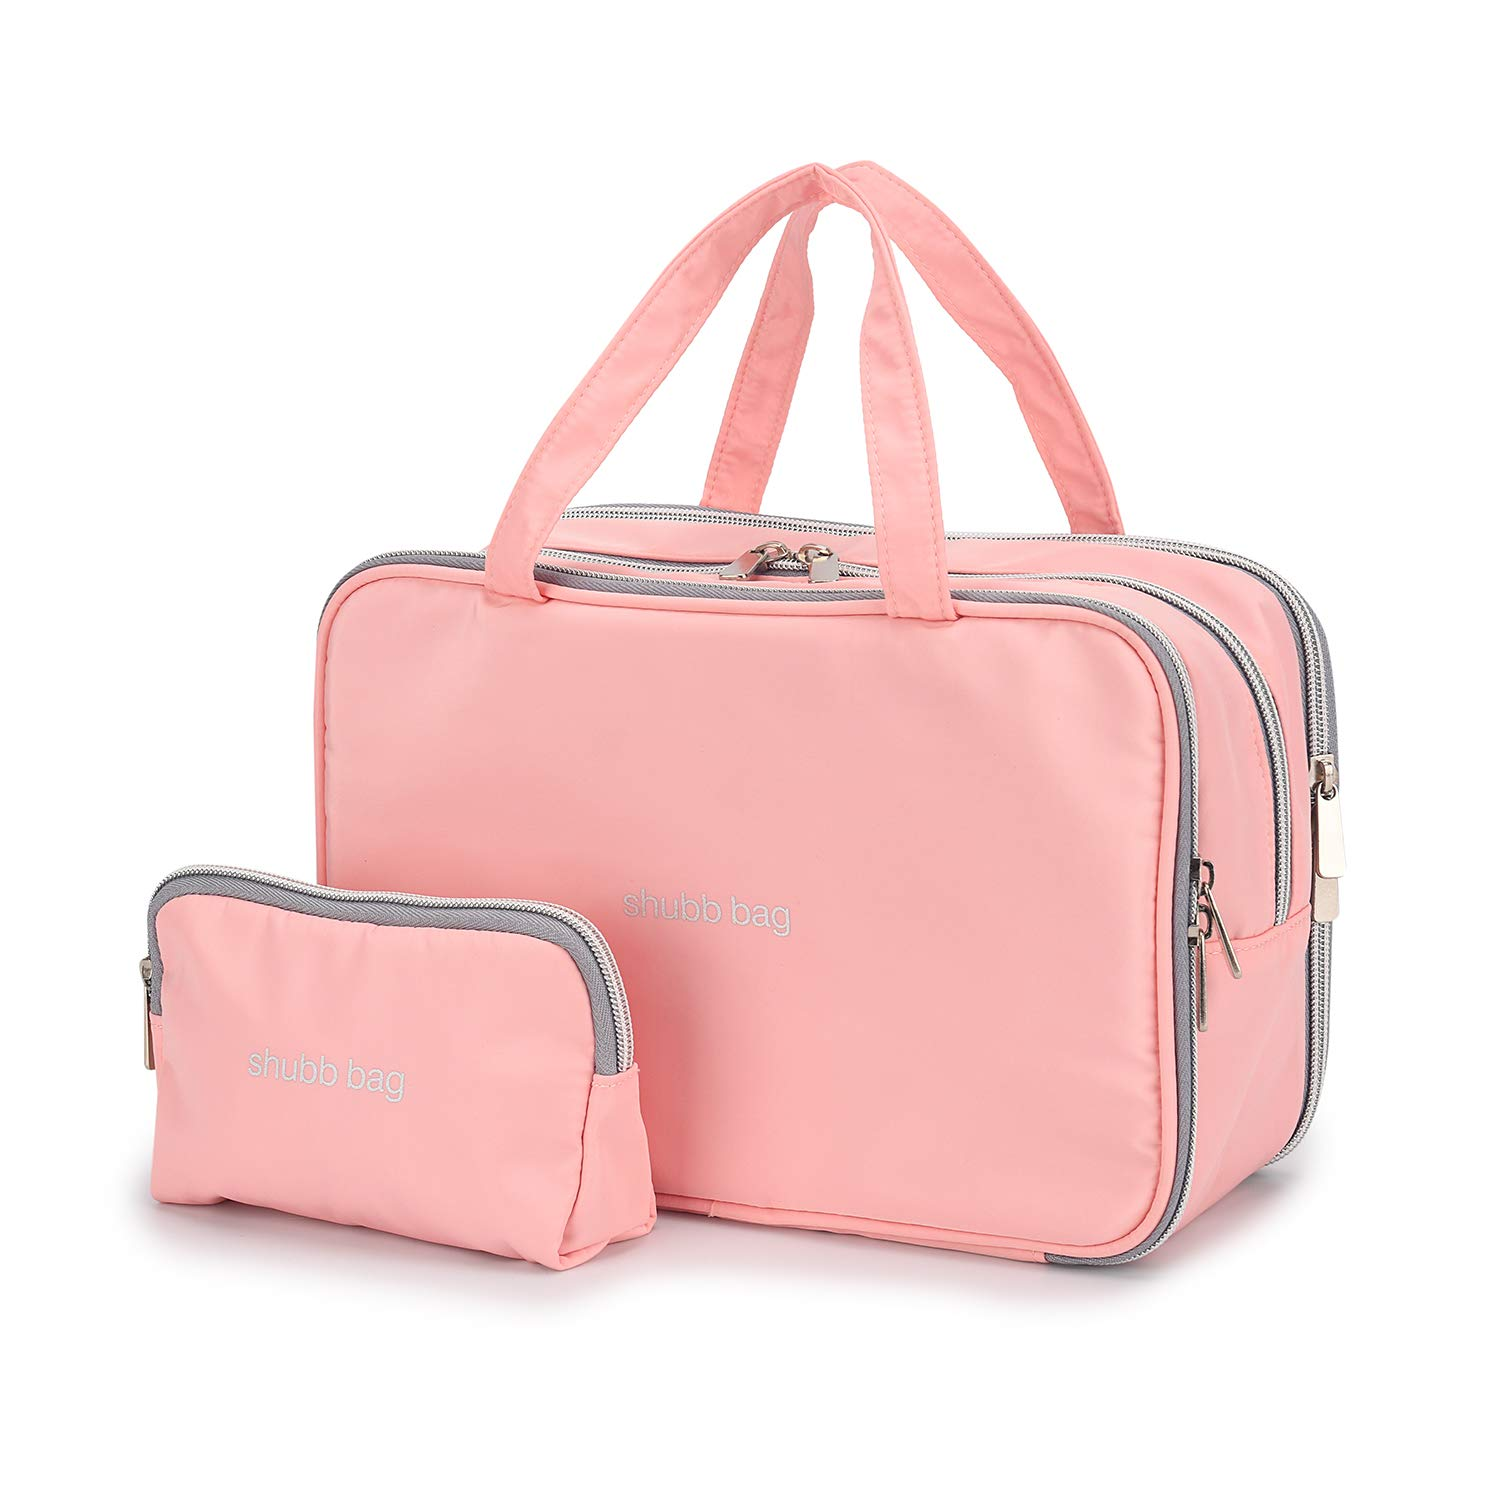 Travel Makeup Bag Toiletry Bags Large Cosmetic Cases for Women Girls Water-resistant (pink/makeup bag set)